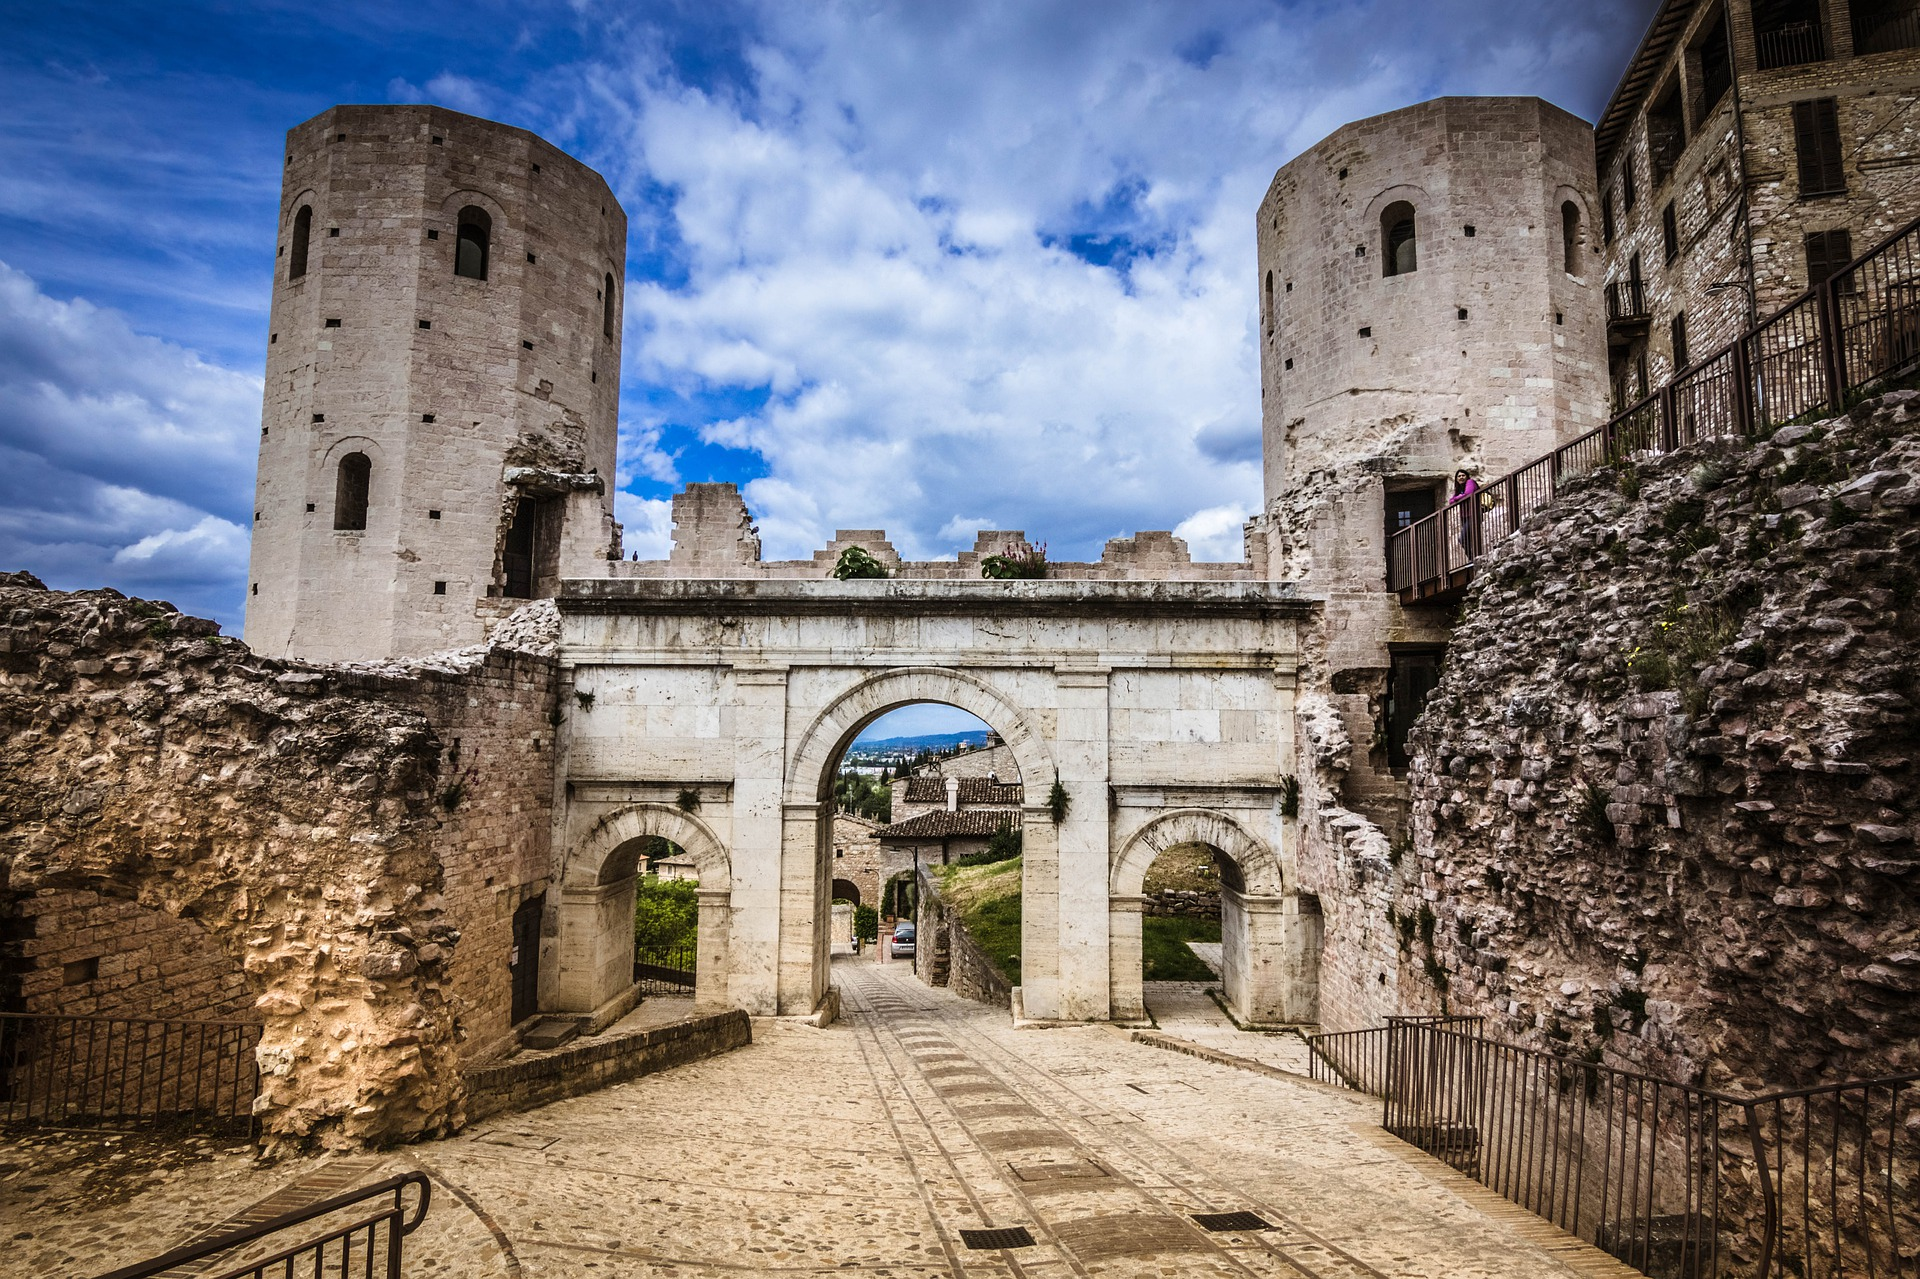 Medieval building with blue skies in Spello, Umbria